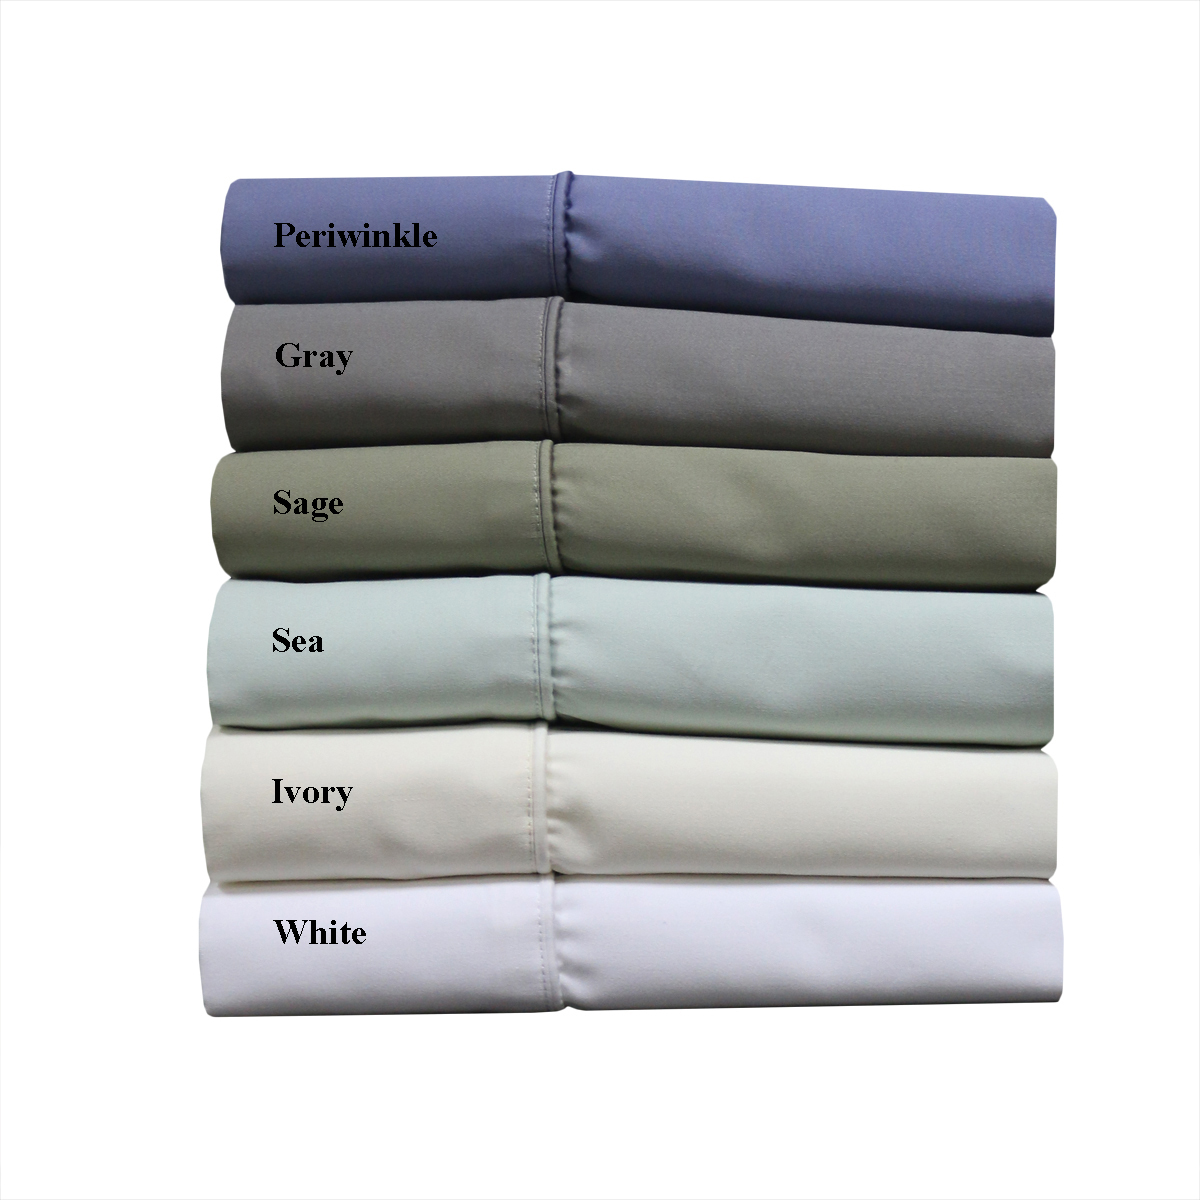 Wrinkle Free 1000 Thread Count Easy Care Cotton Blend Bed Sheets - King Size - Ivory